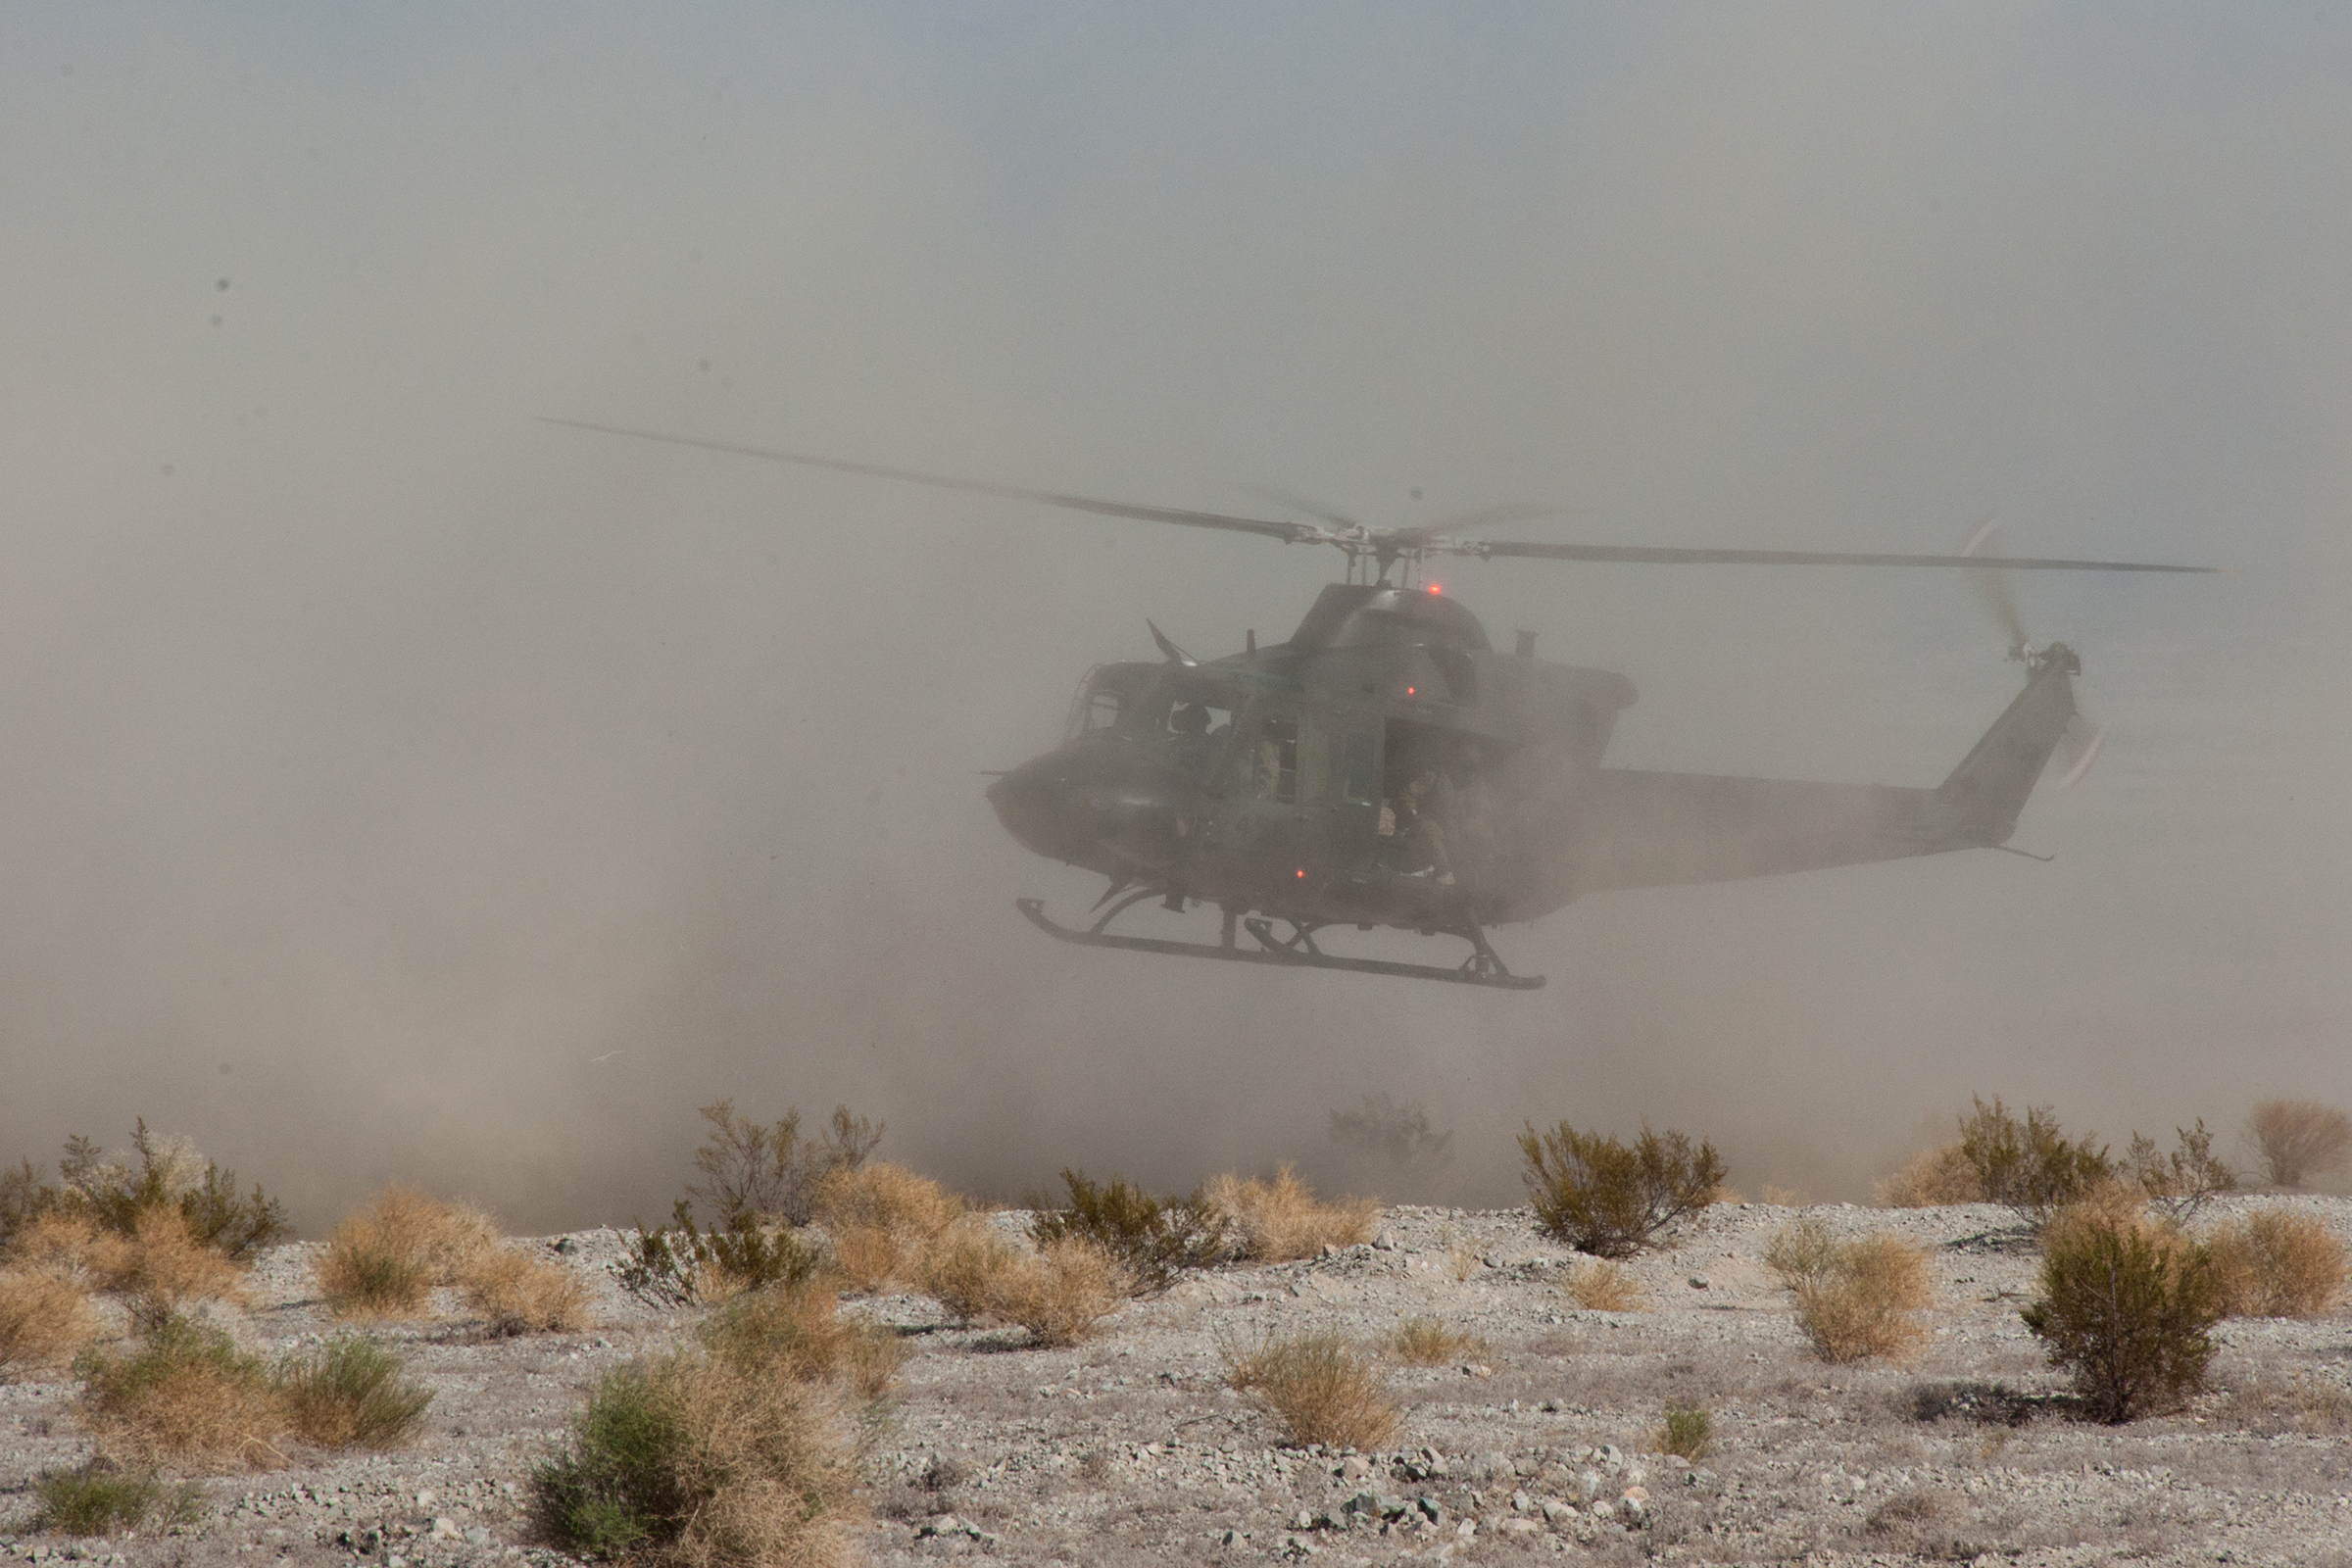 A military helicopter flies very low above a desert landscape, surrounded by dust.